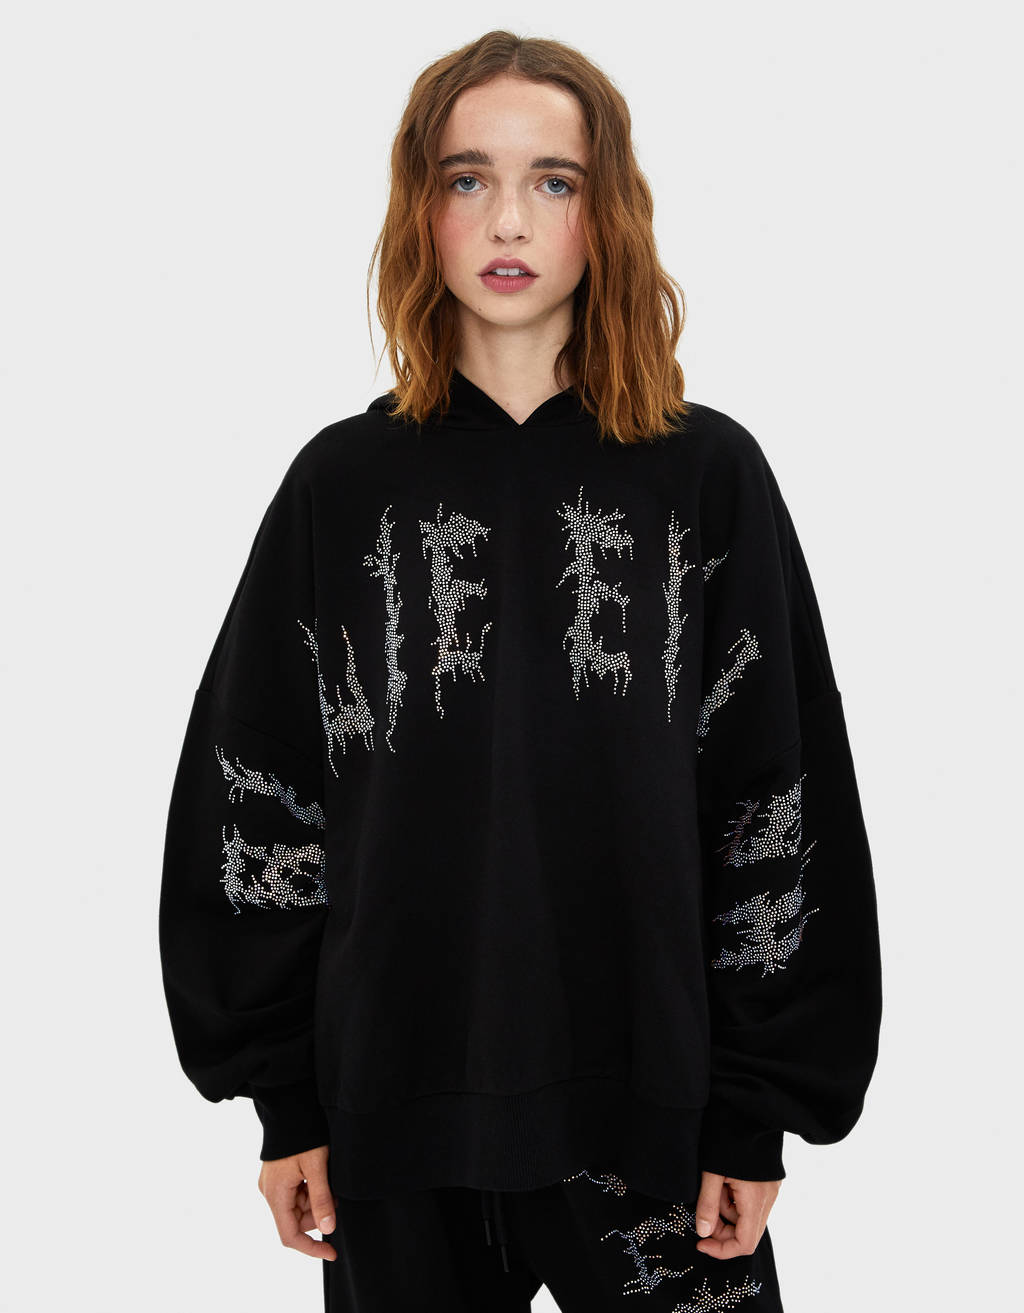 Sweat à strass Billie Eilish x Bershka